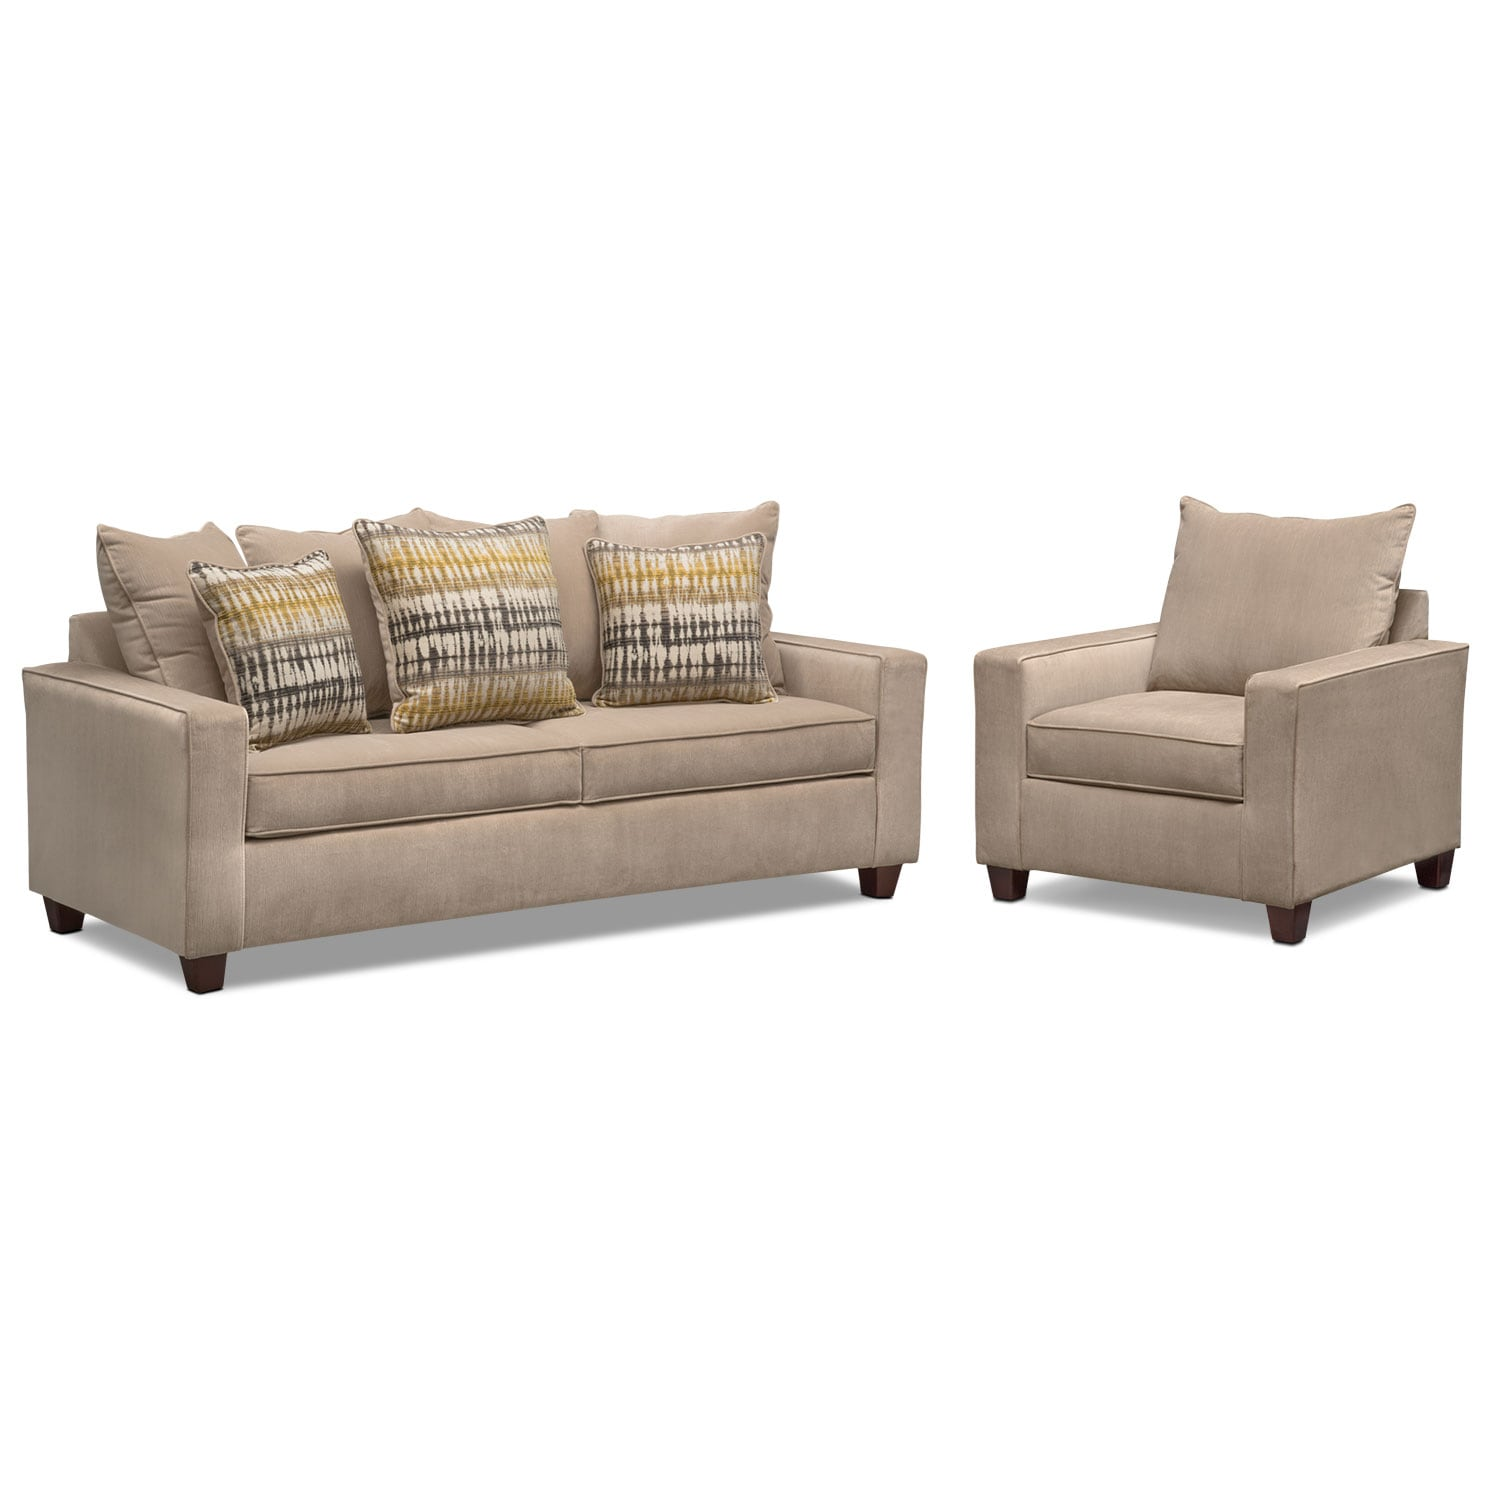 Bryden Queen Memory Foam Sleeper Sofa And Chair Set   Beige By Factory  Outlet